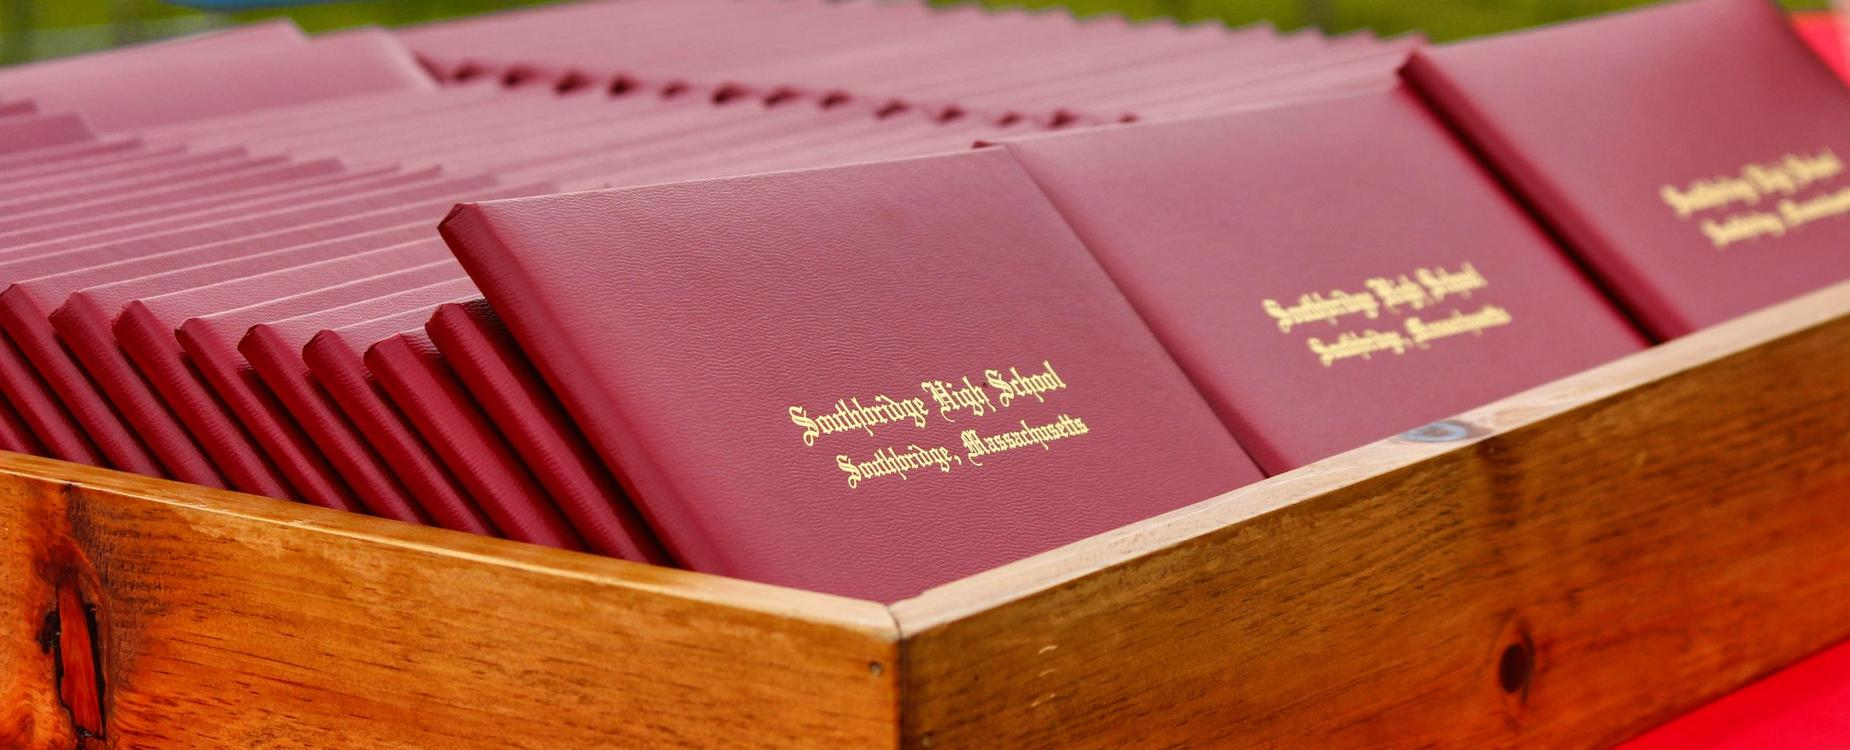 Photo of diplomas at graduation before they were handed out